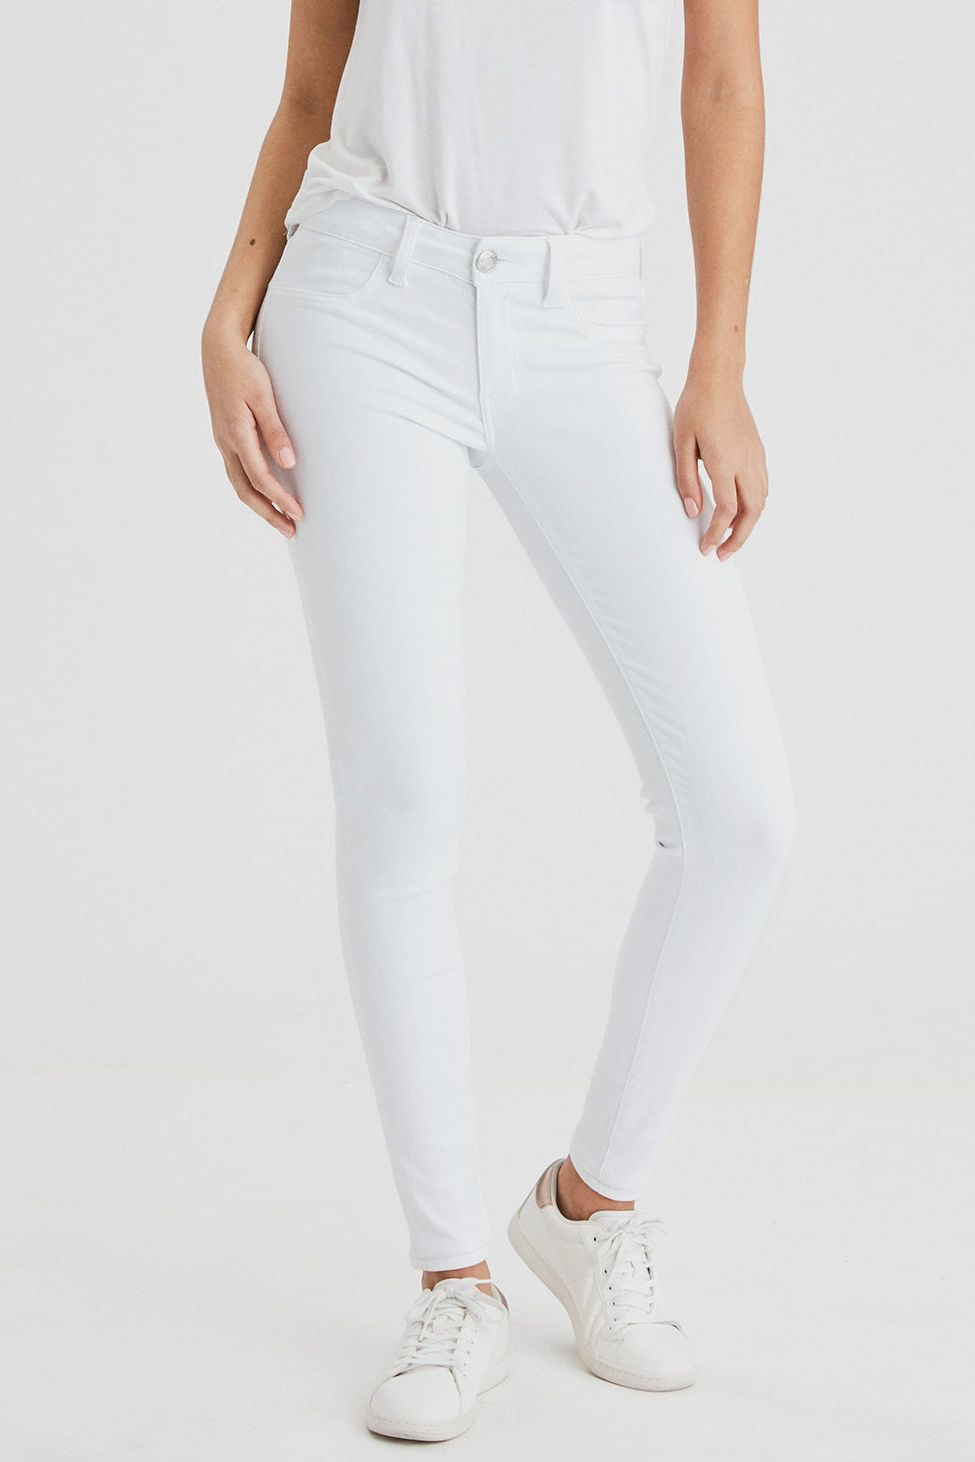 f16e5cc19b119 Best white jeans that are leggings. AE Ne(x)t Level Jegging